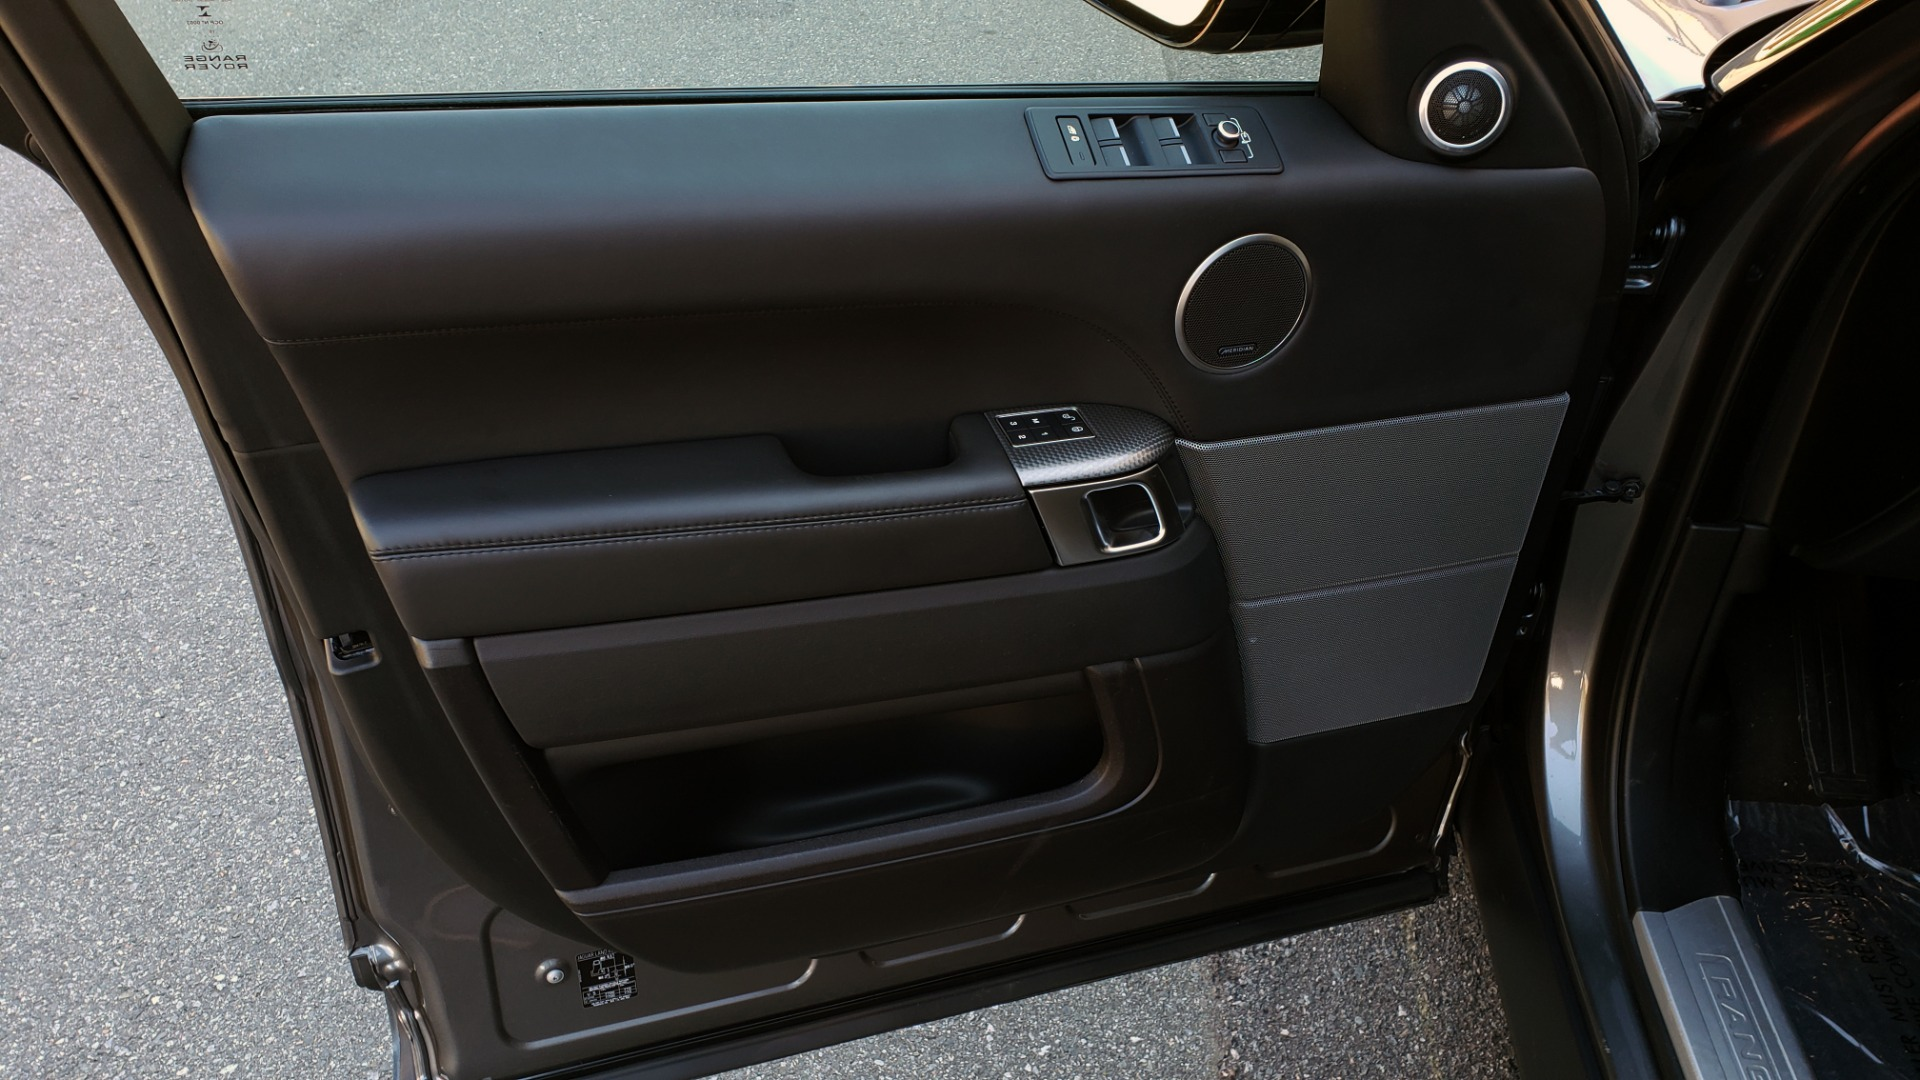 Used 2017 Land Rover RANGE ROVER SPORT HSE DYNAMIC / NAV / SUNROOF / REARVIEW for sale Sold at Formula Imports in Charlotte NC 28227 27